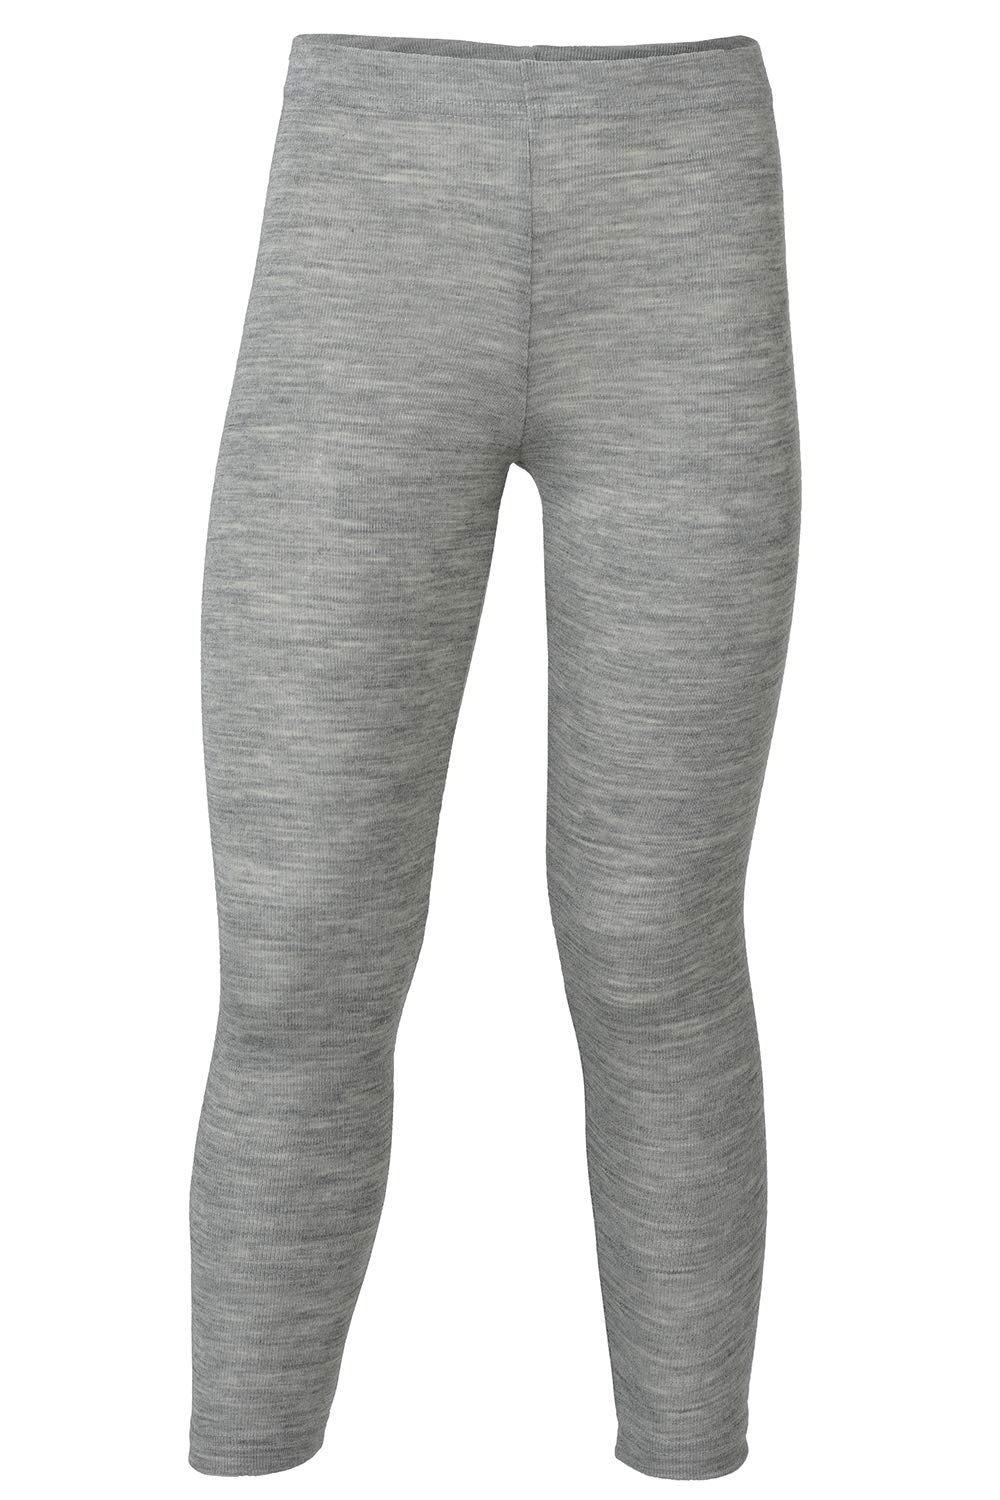 Kids Thermal Underwear: Leggings Pants Base Layer, Organic Merino Wool and Silk (EU-116 | 4-6 years, Grey) by EcoAble Apparel (Image #4)